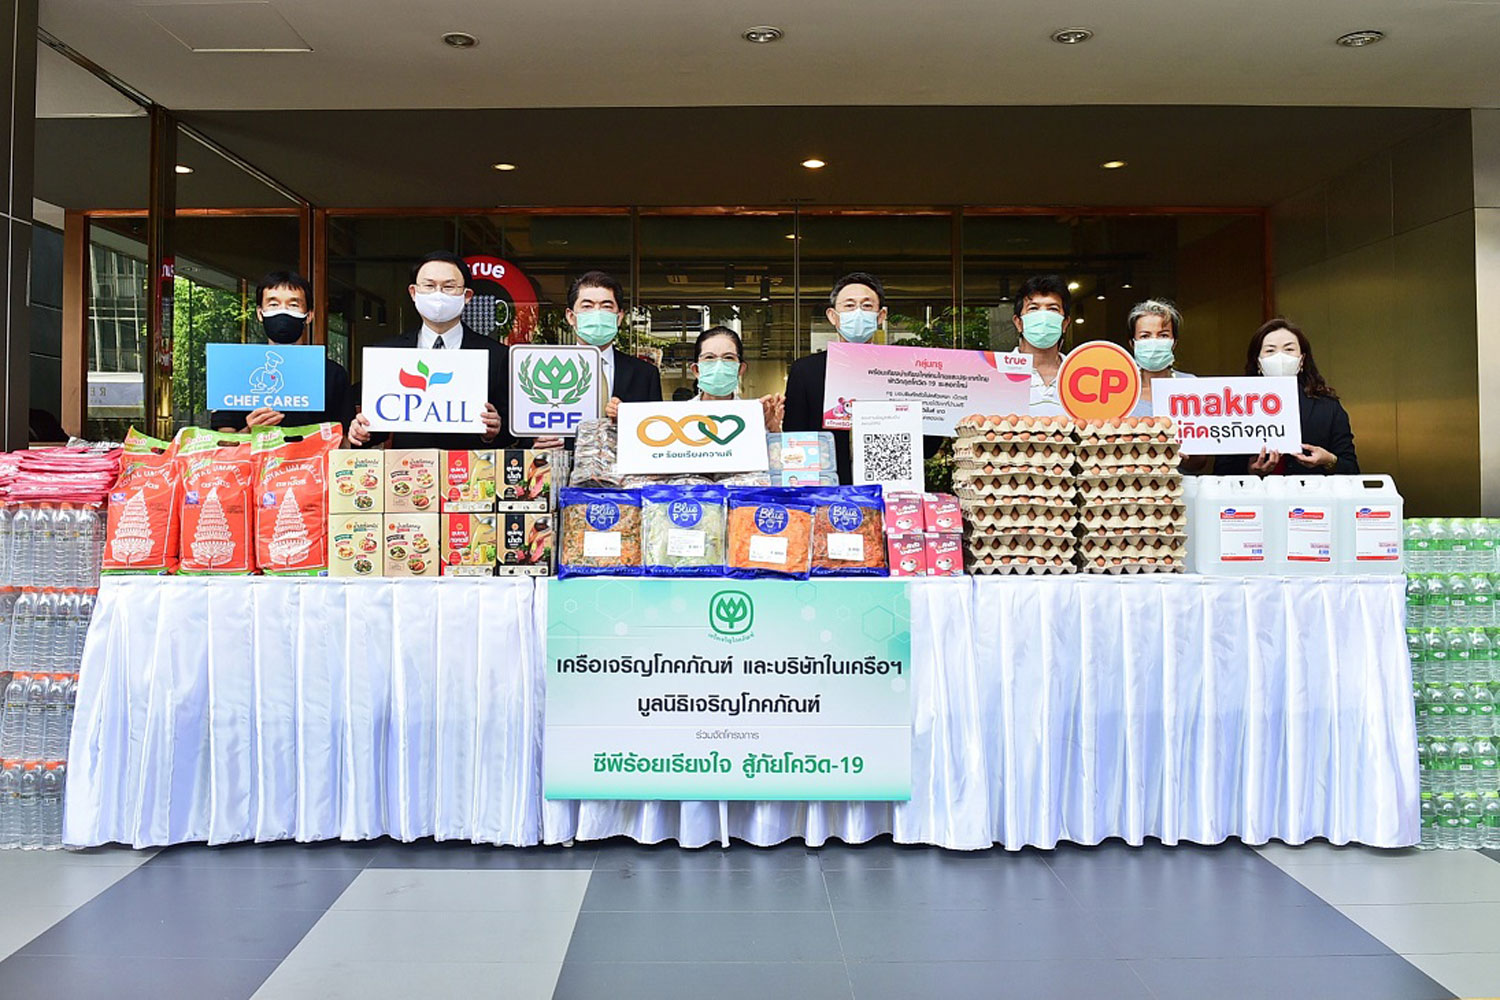 CP Group and CP Foods provide essential supplies for Khlong Toei residents amid COVID-19 crisis